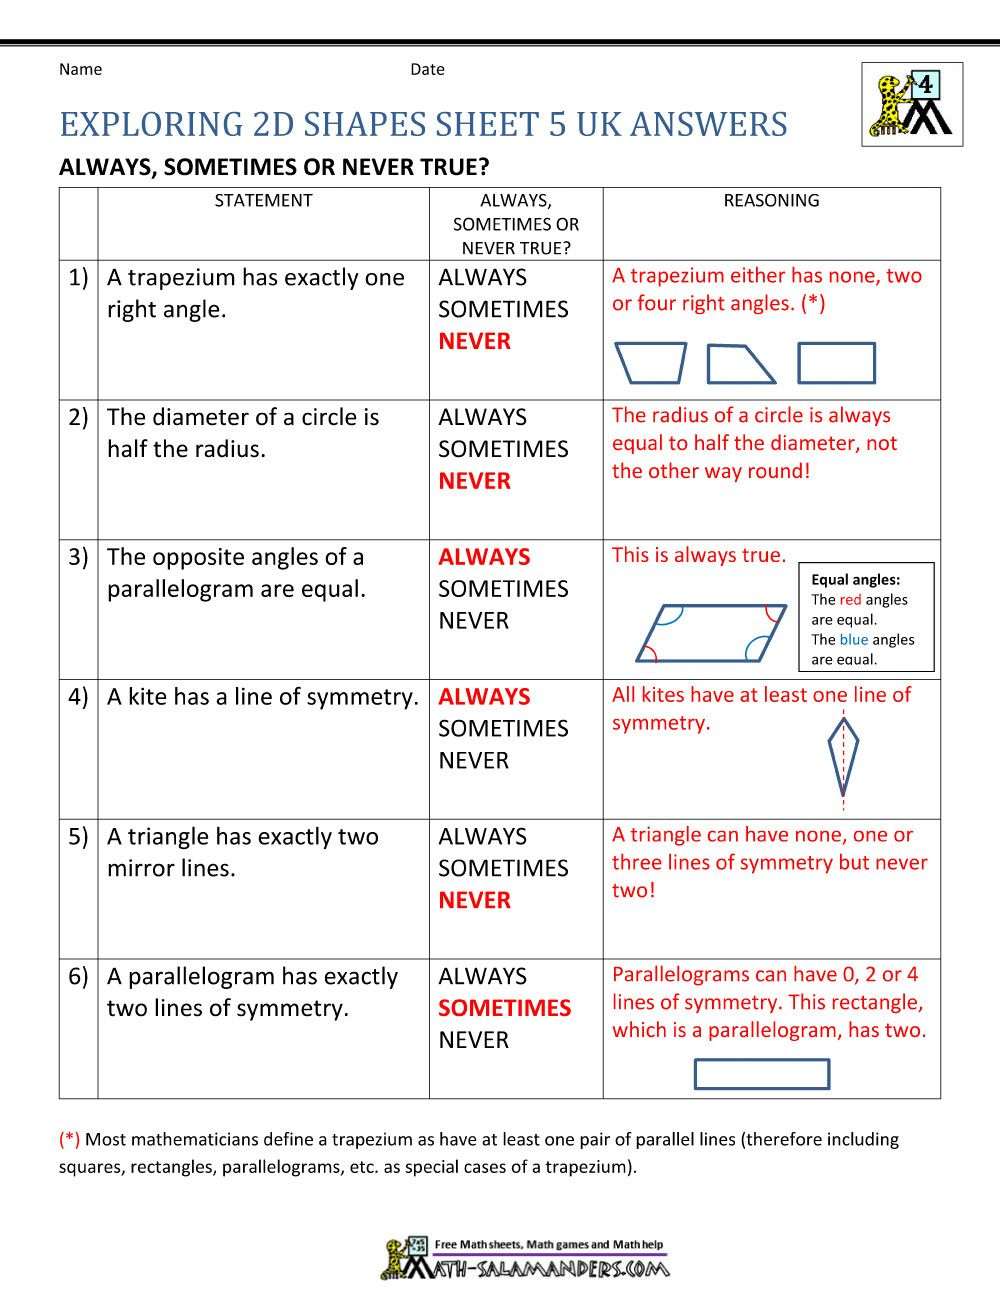 5 Understanding Elementary Shapes Class 6 Worksheet With Answers 2 In 2020 Math Worksheets Geometry Worksheets 4th Grade Math Worksheets